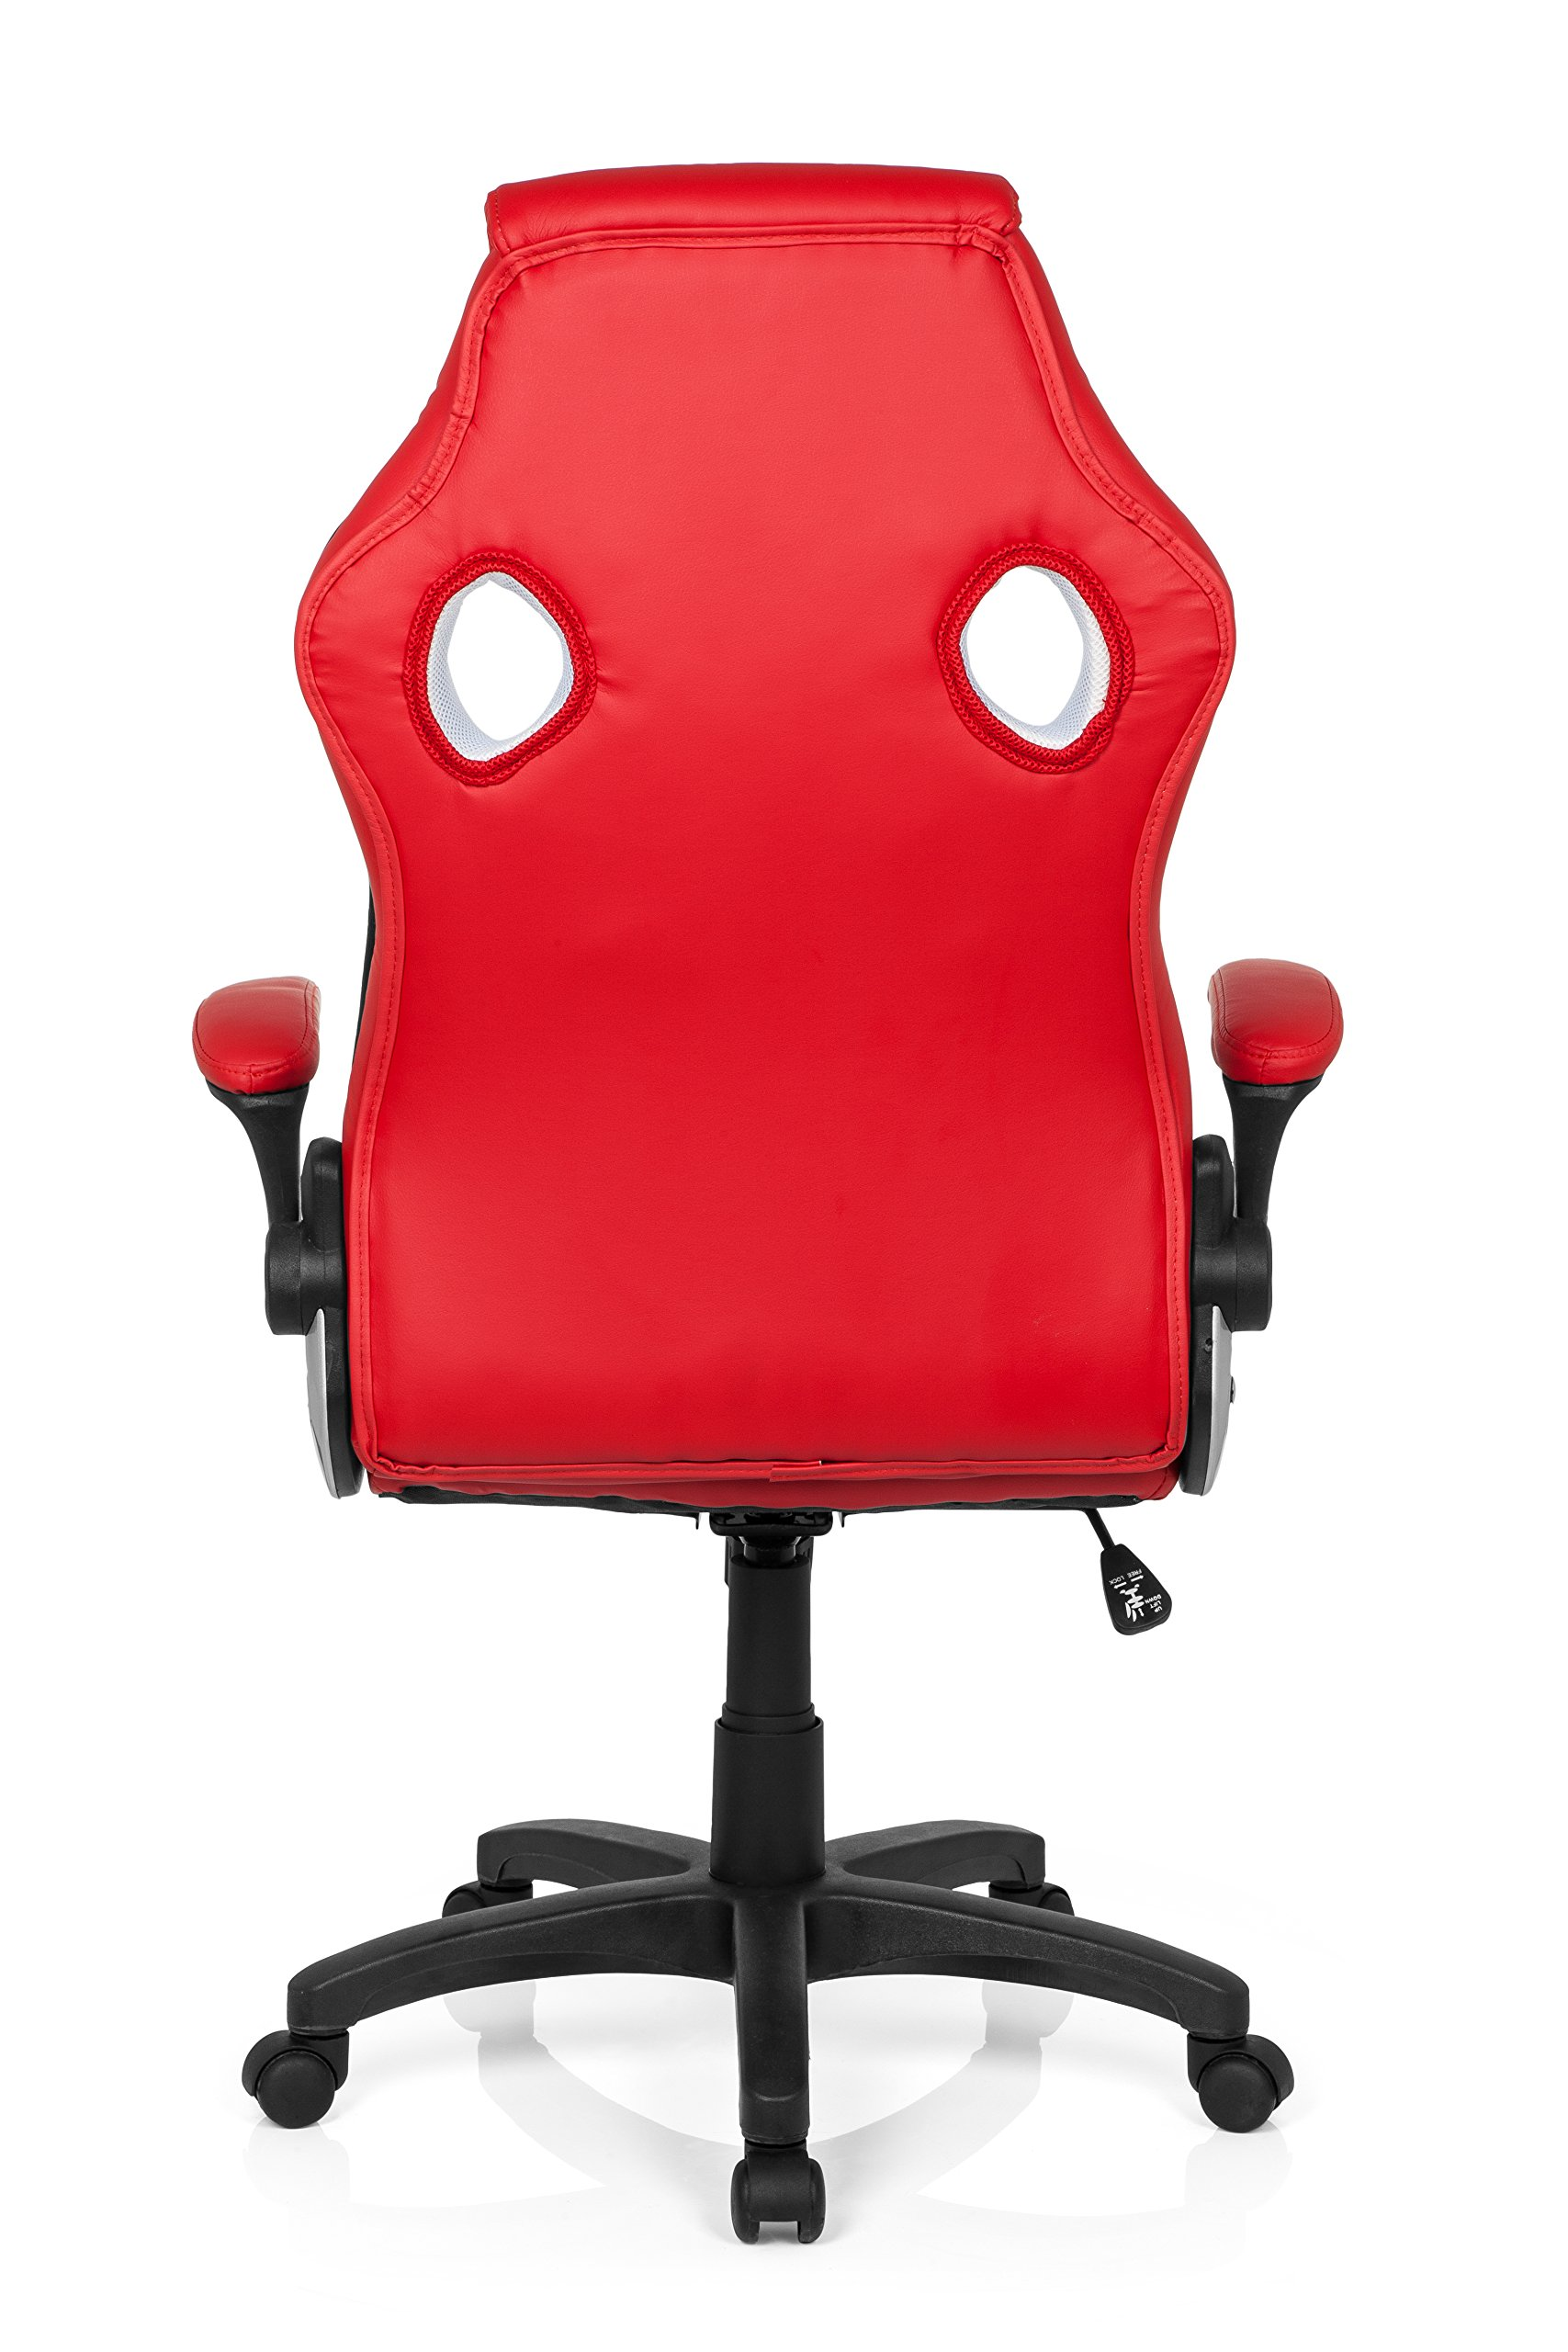 Office Chair Gaming Chair fold back armrests Red White GAMING ZONE PRO CL100